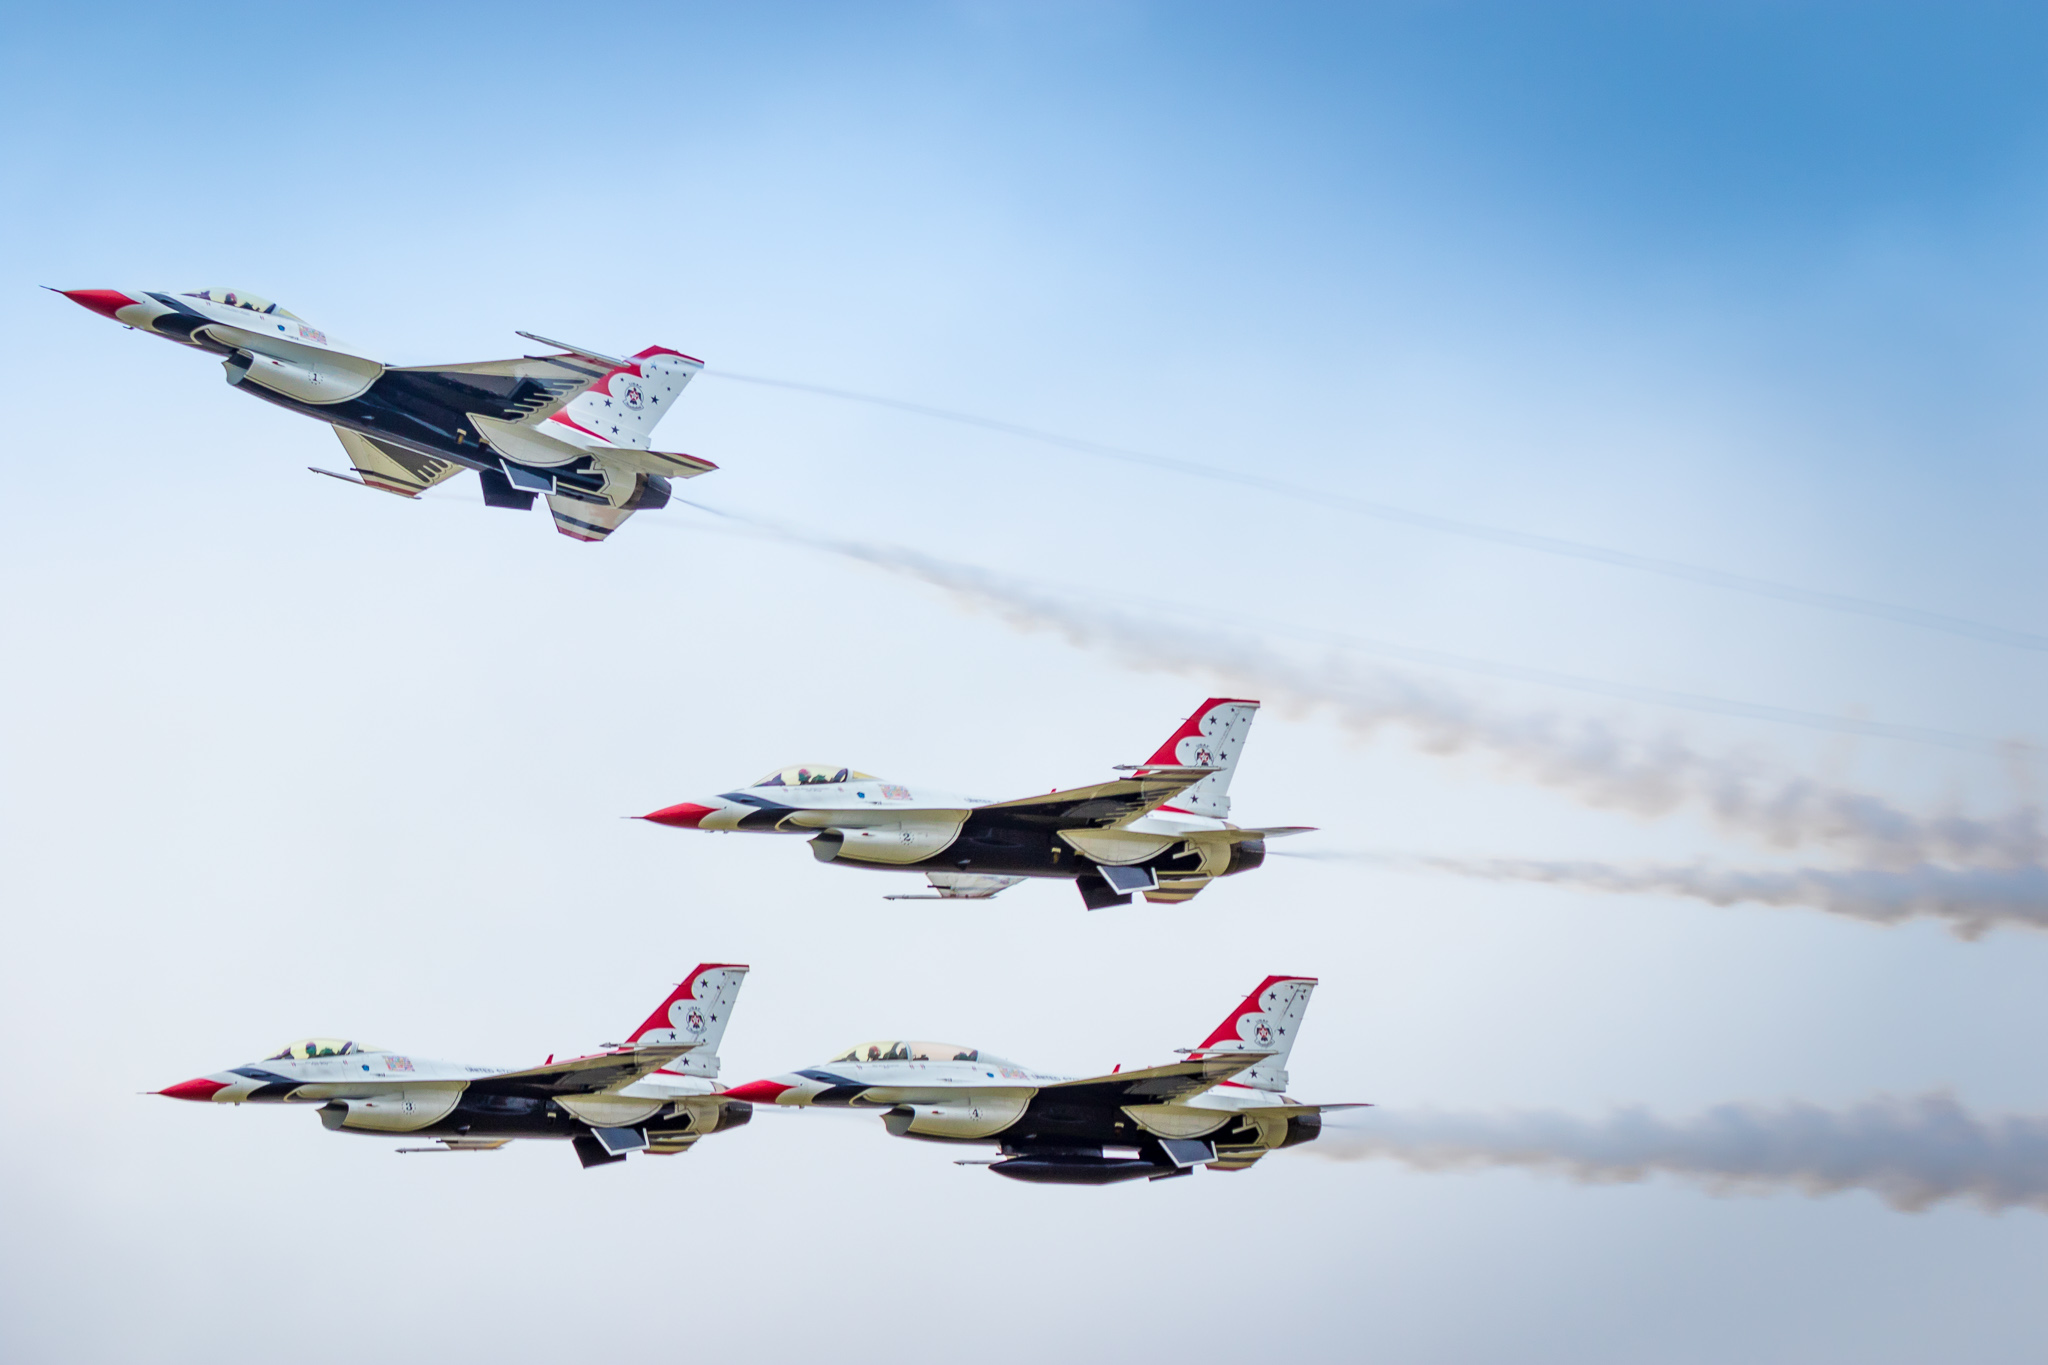 USAF Thunderbirds Flying the General Dynamics F-16 Fighting Falcon